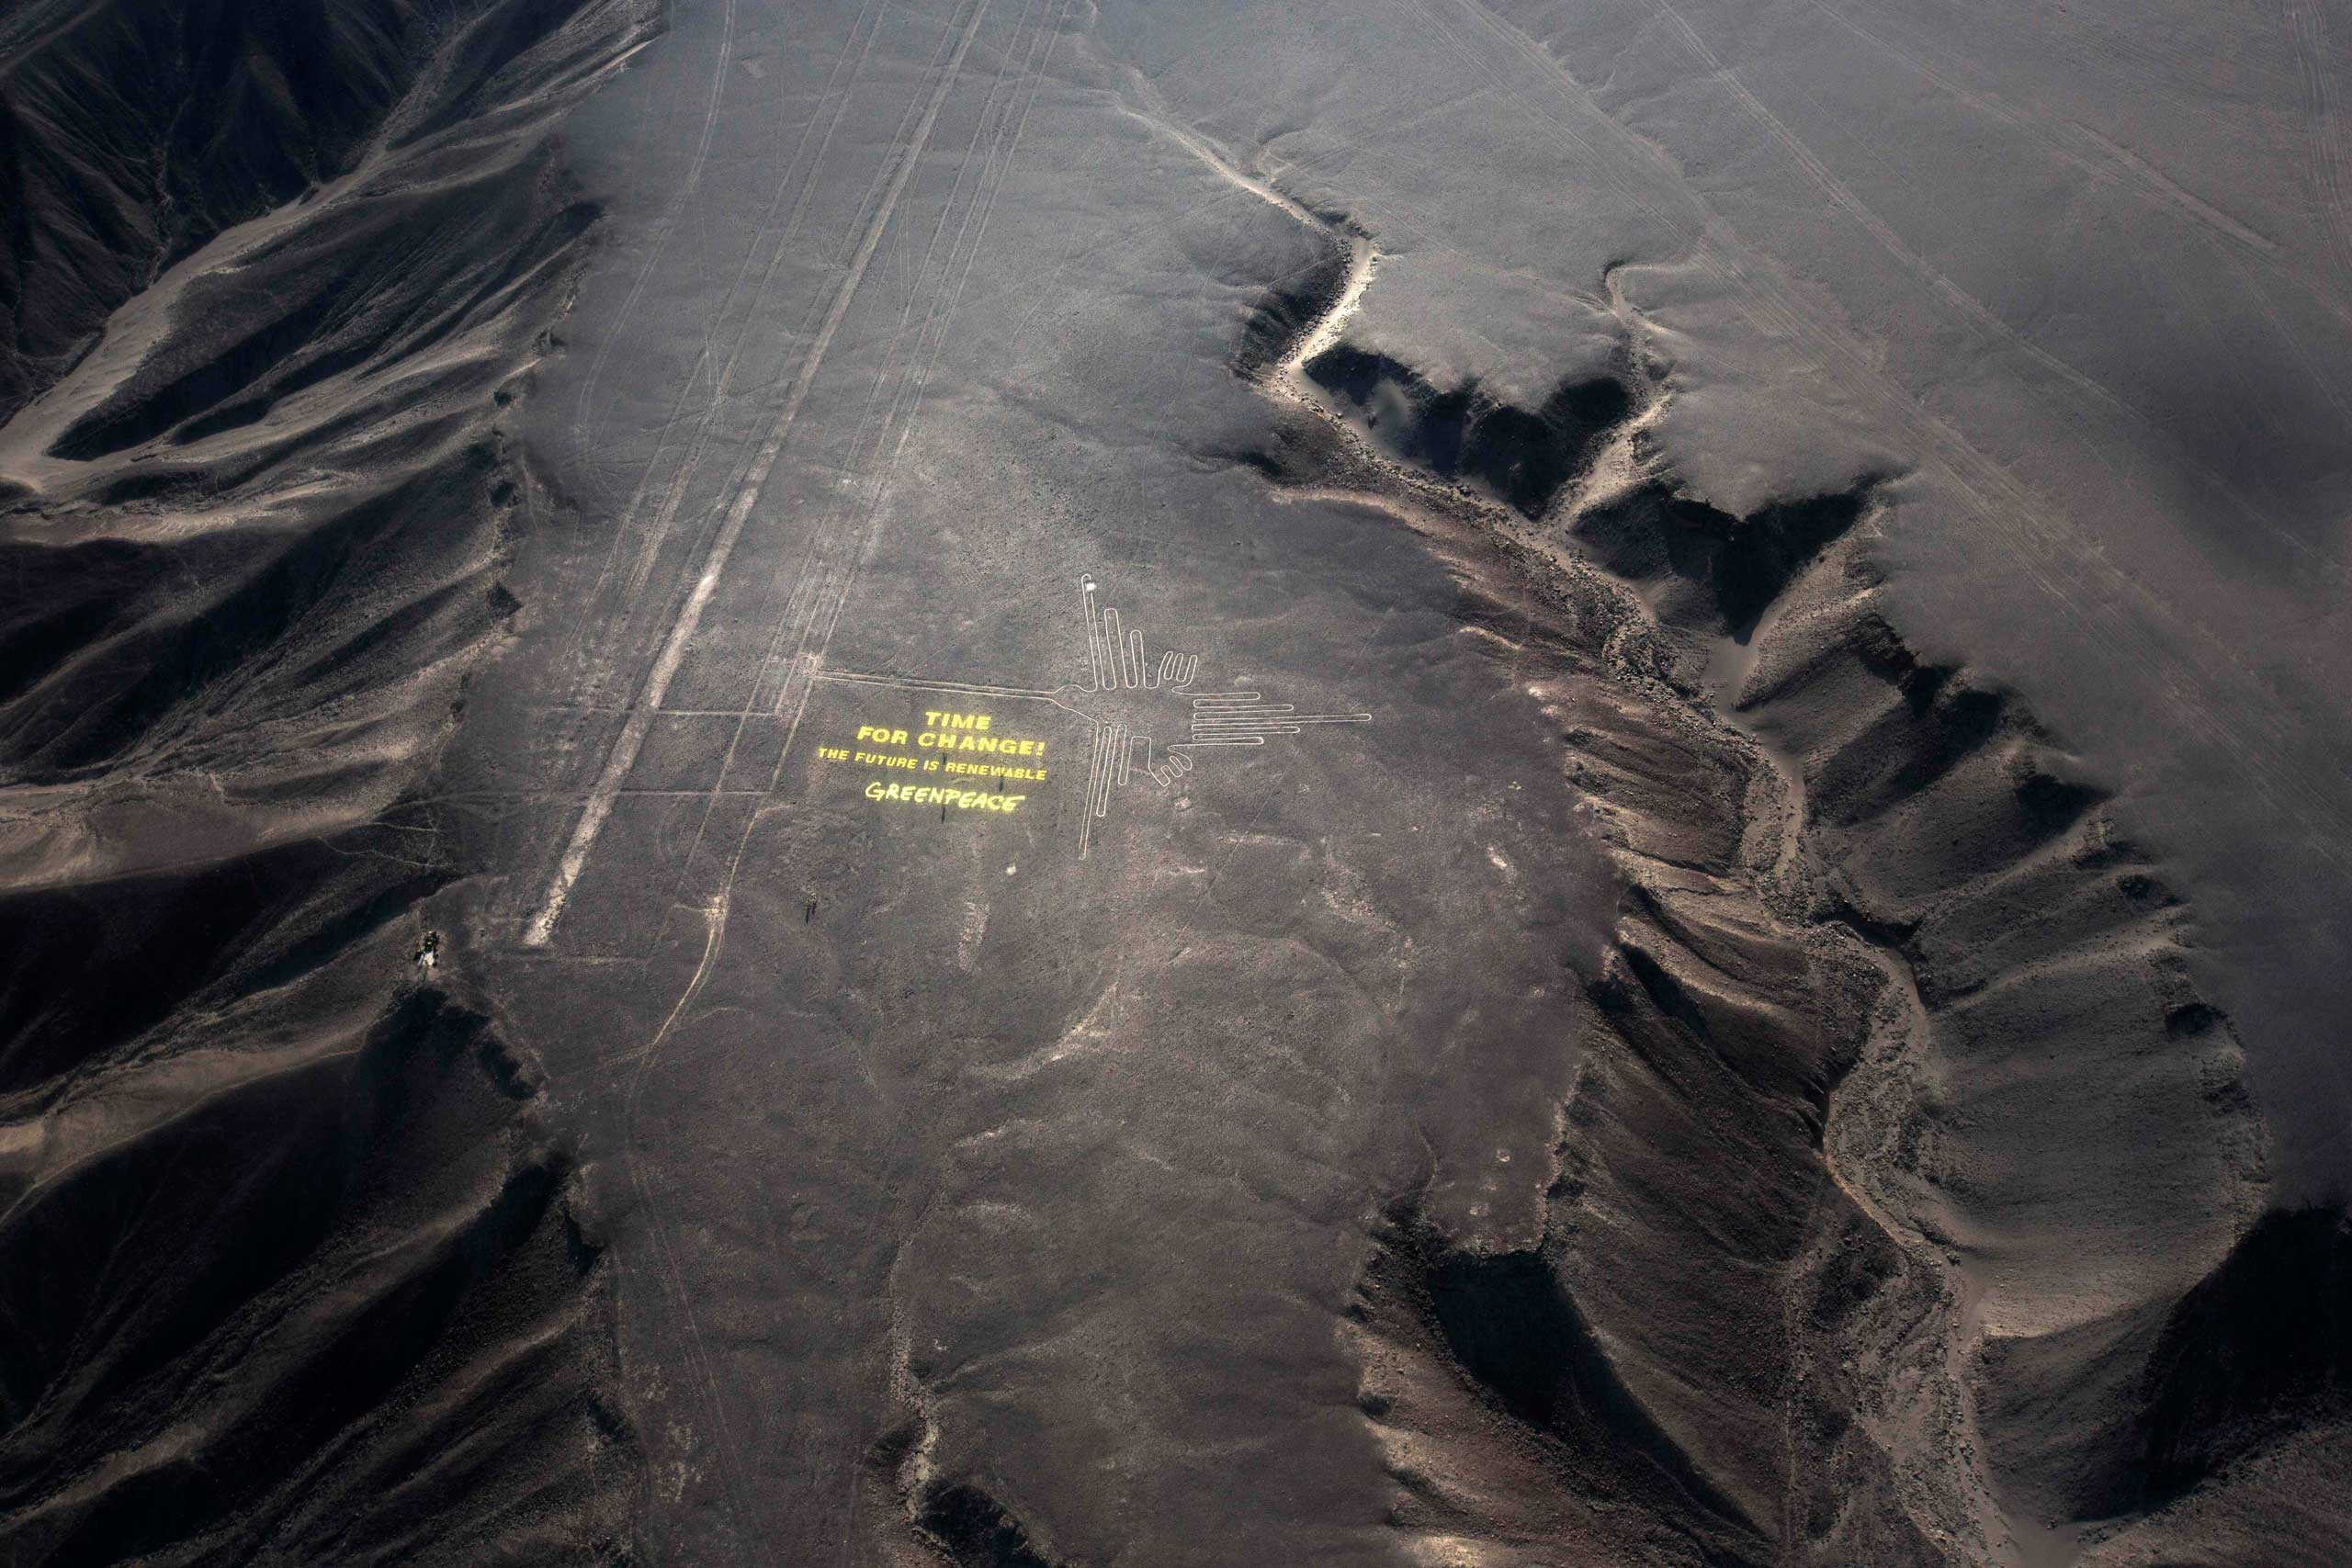 Greenpeace activists stand next to massive letters delivering the message  Time for Change: The Future is Renewable,  next to the hummingbird geoglyph in Nazca in Peru,, Dec. 8, 2014.